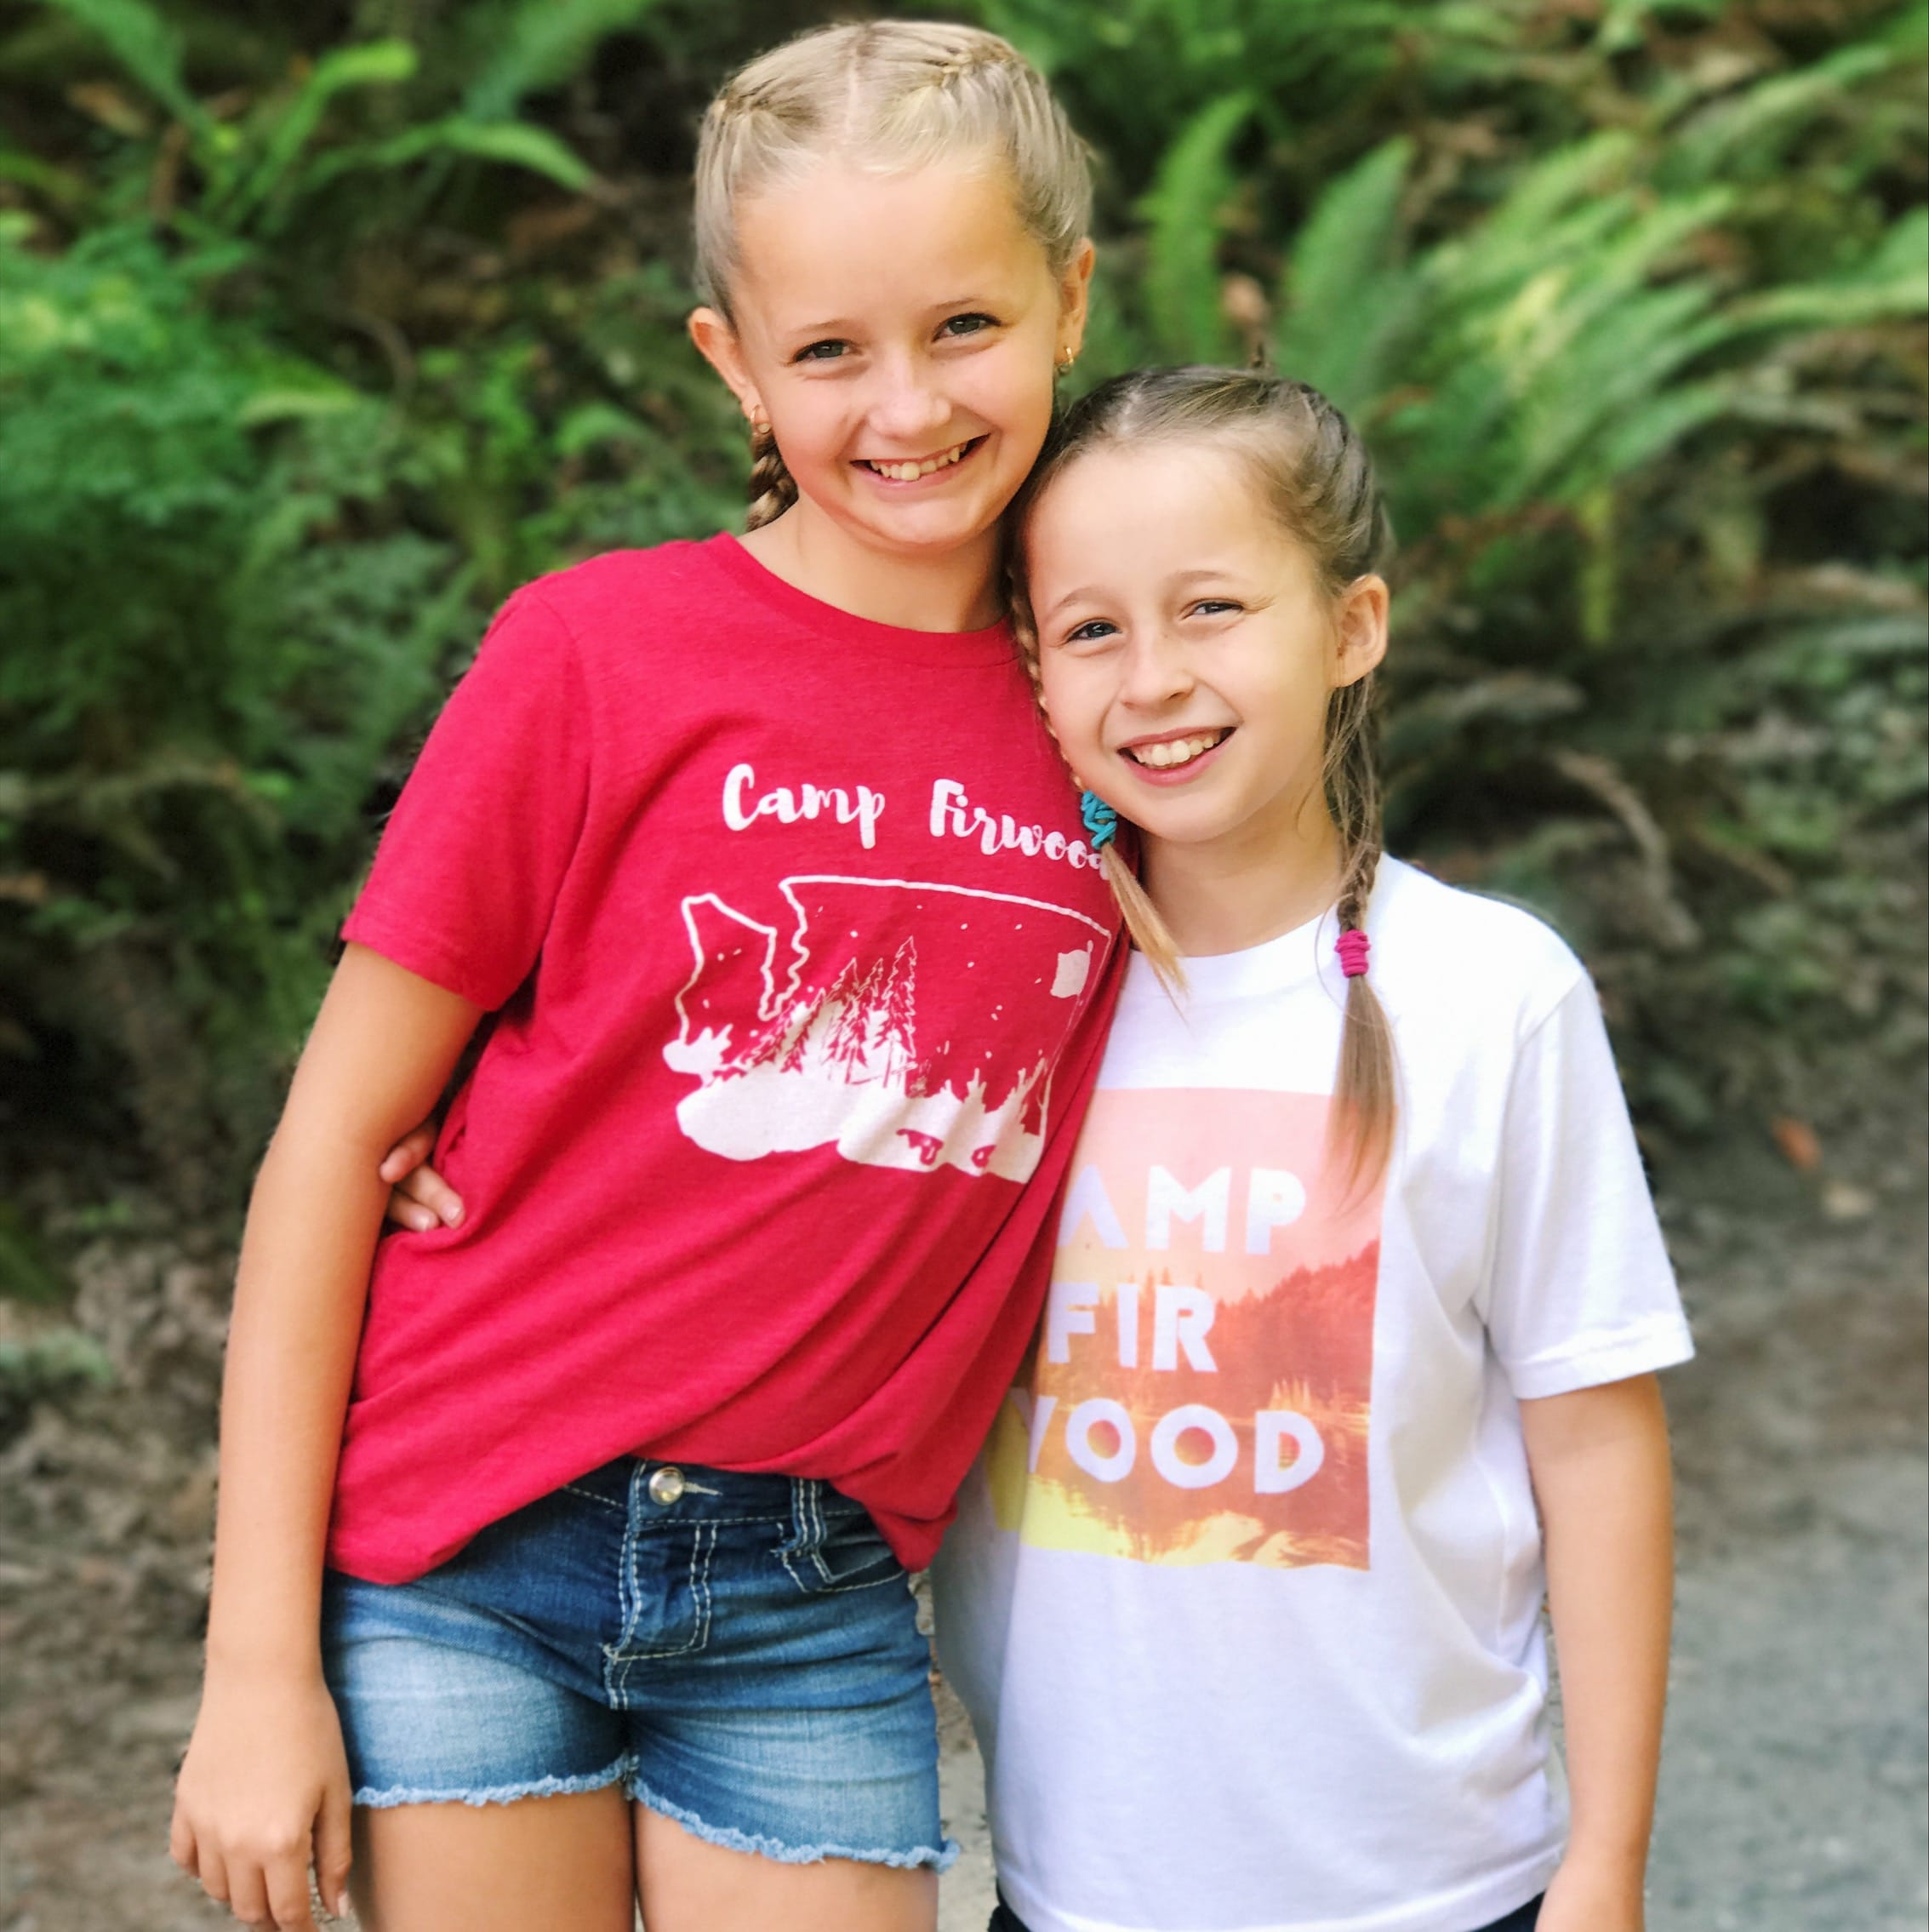 The girls in their Camp Firwood gear!